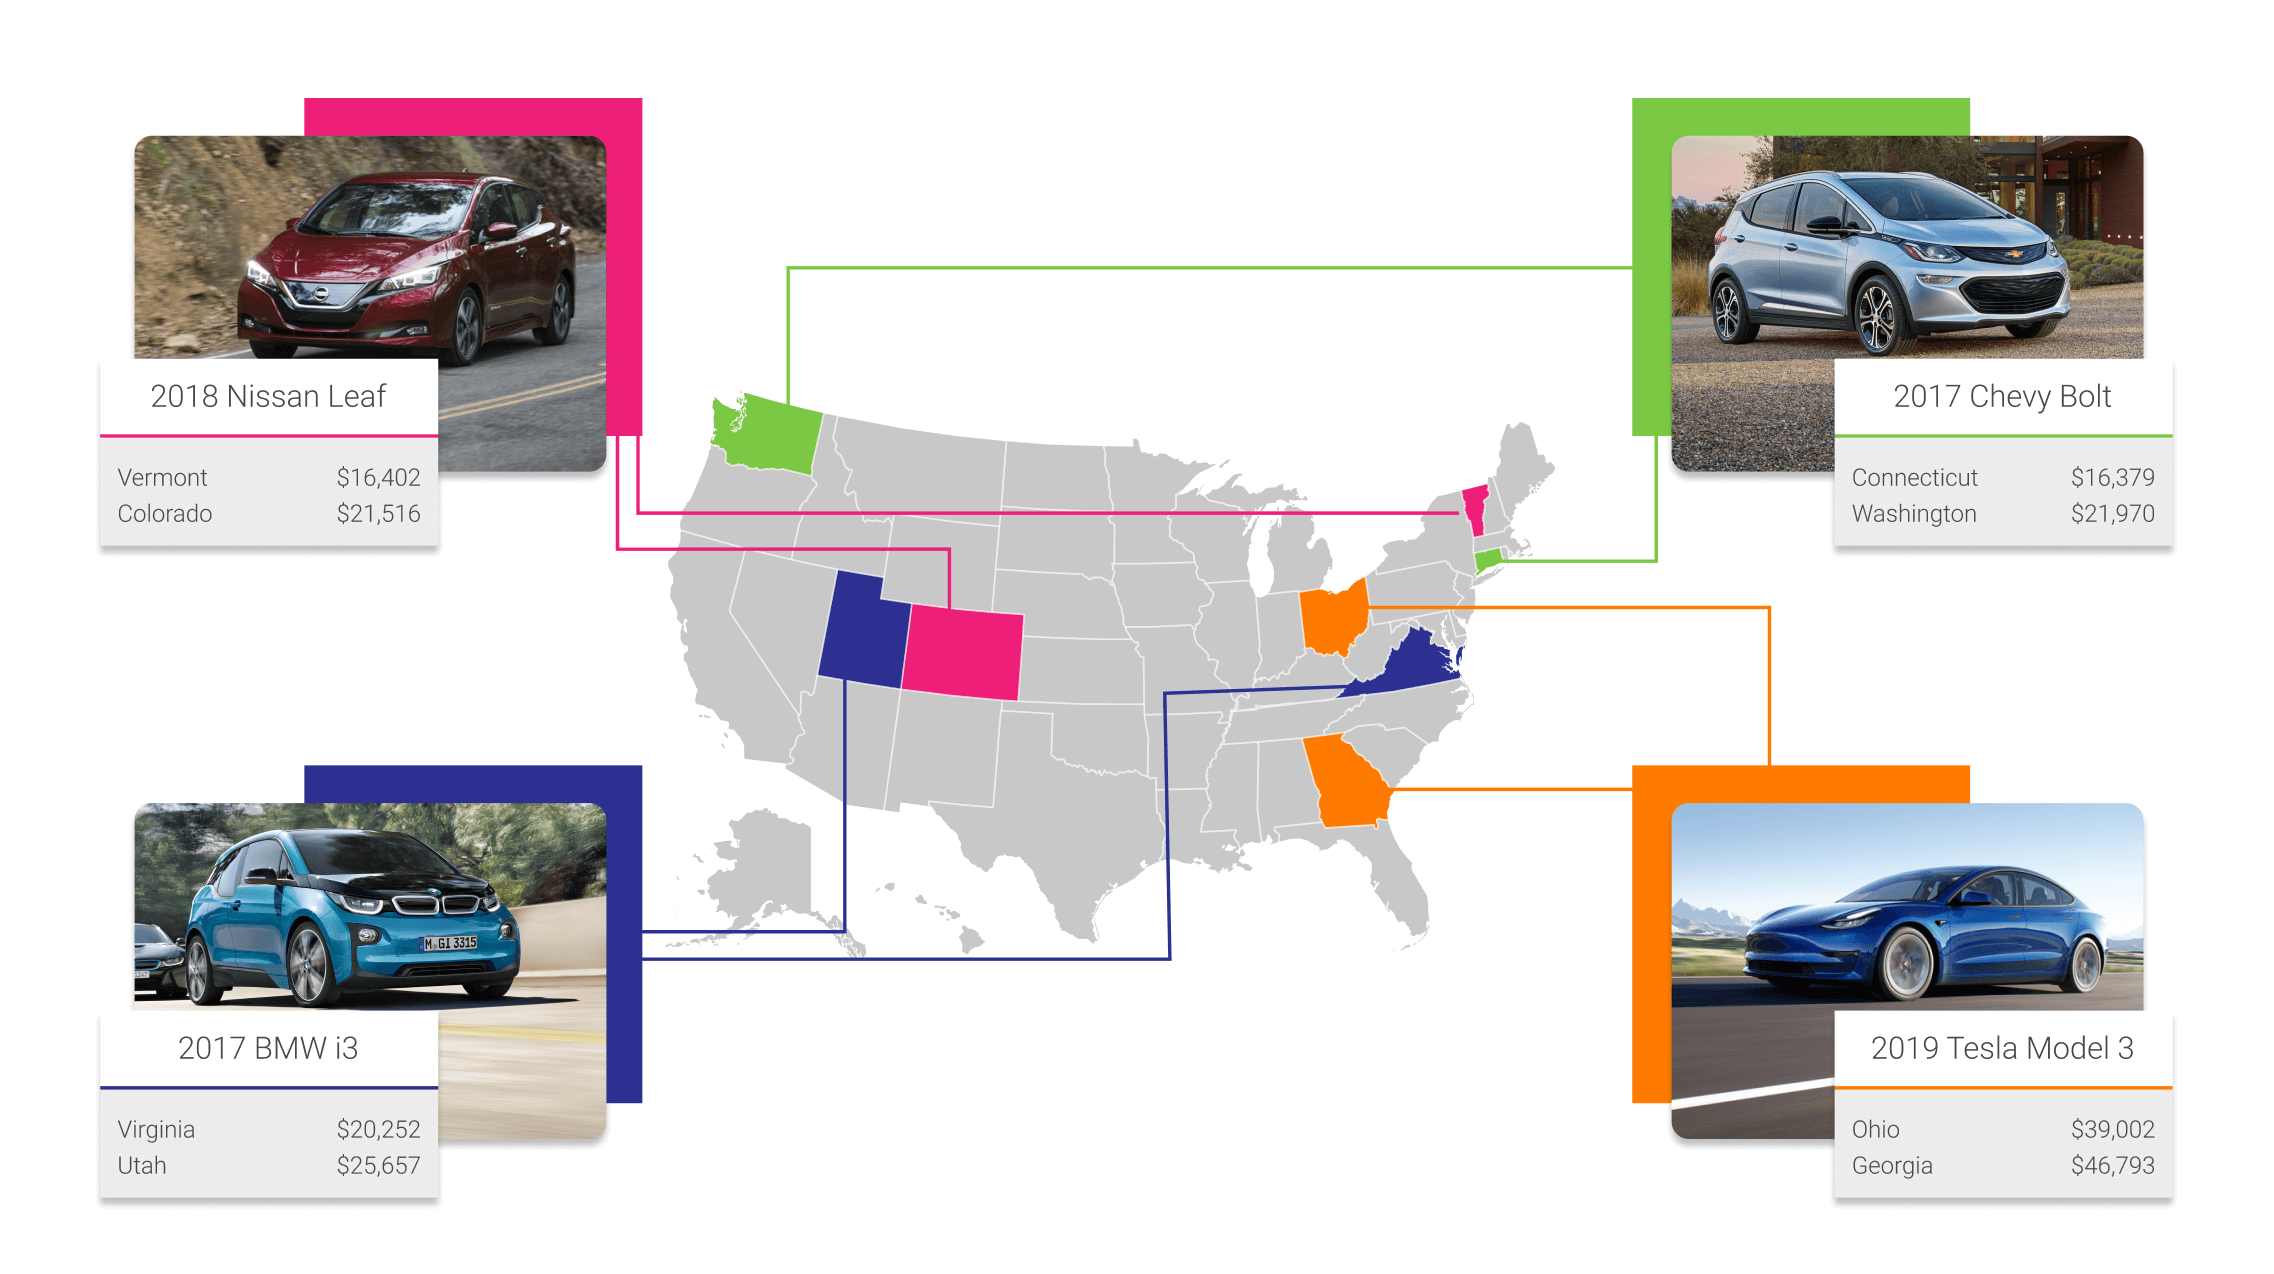 EV prices vary by US state